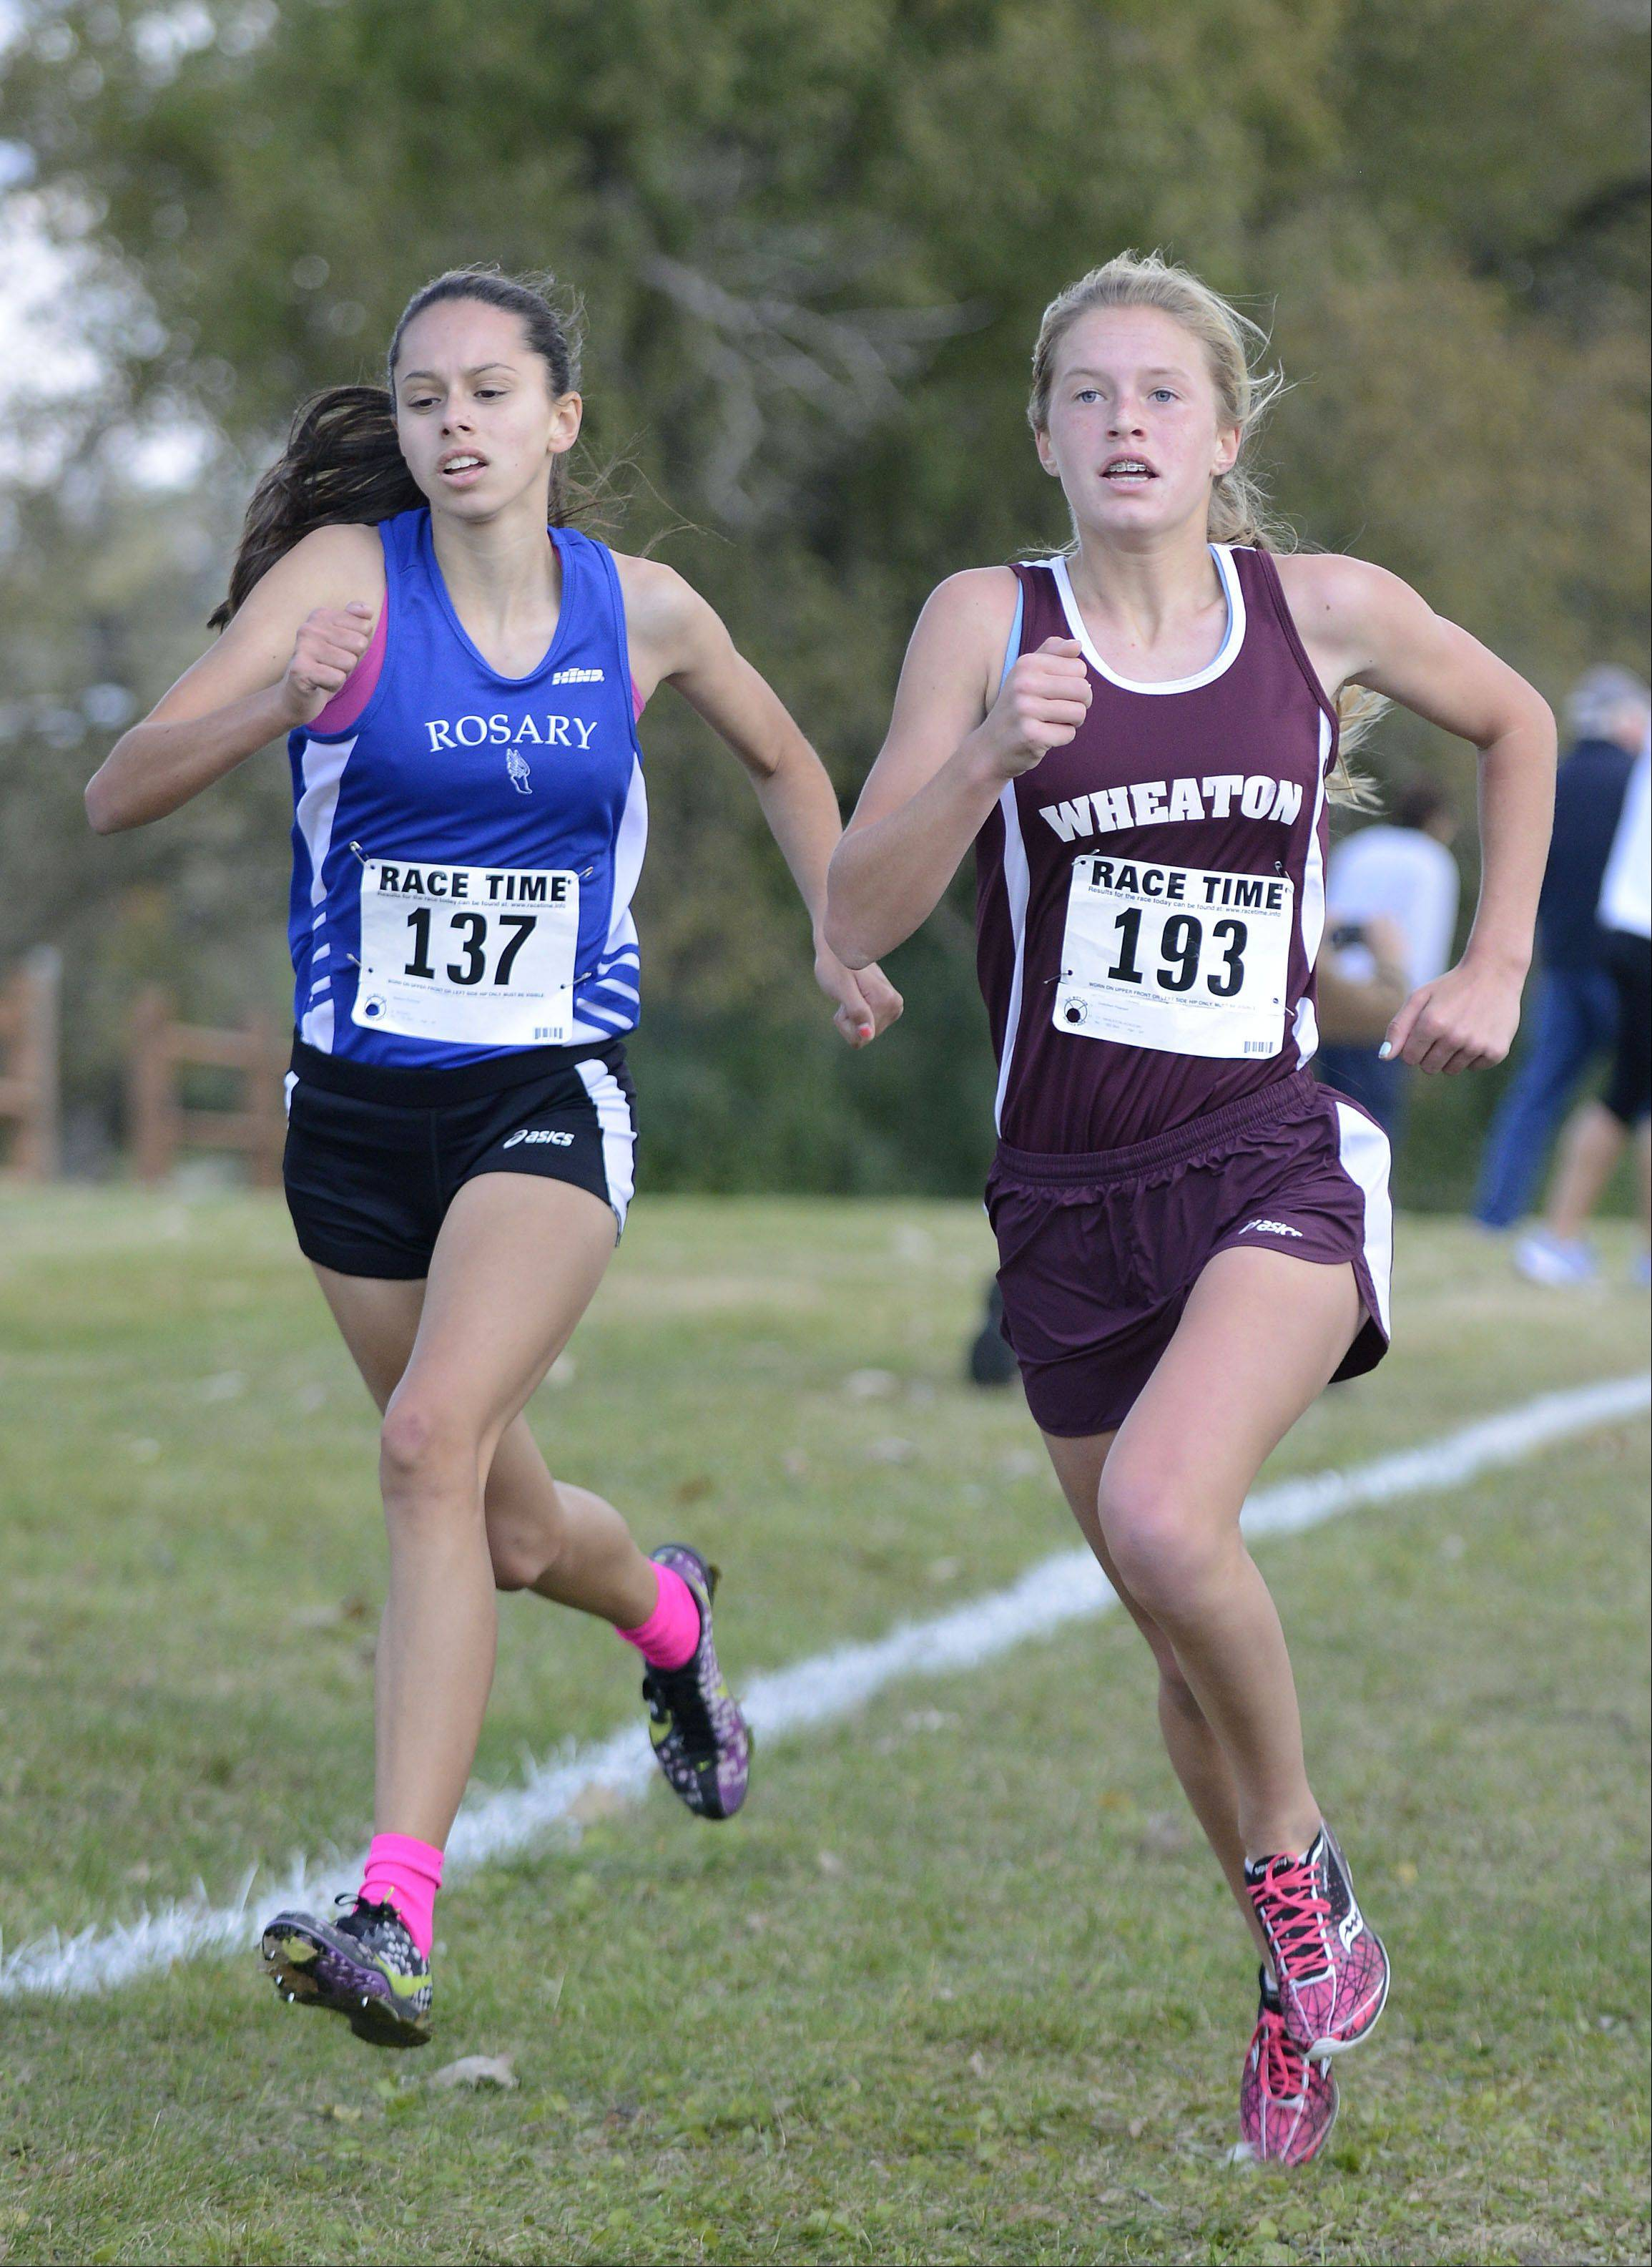 Rosary's Madison Ronzone and Wheaton Academy's Gretchen Pearson battle to the finish line in the Class 2A cross country regional on Saturday, October 26. Pearson took ninth place, Ronzone took tenth.